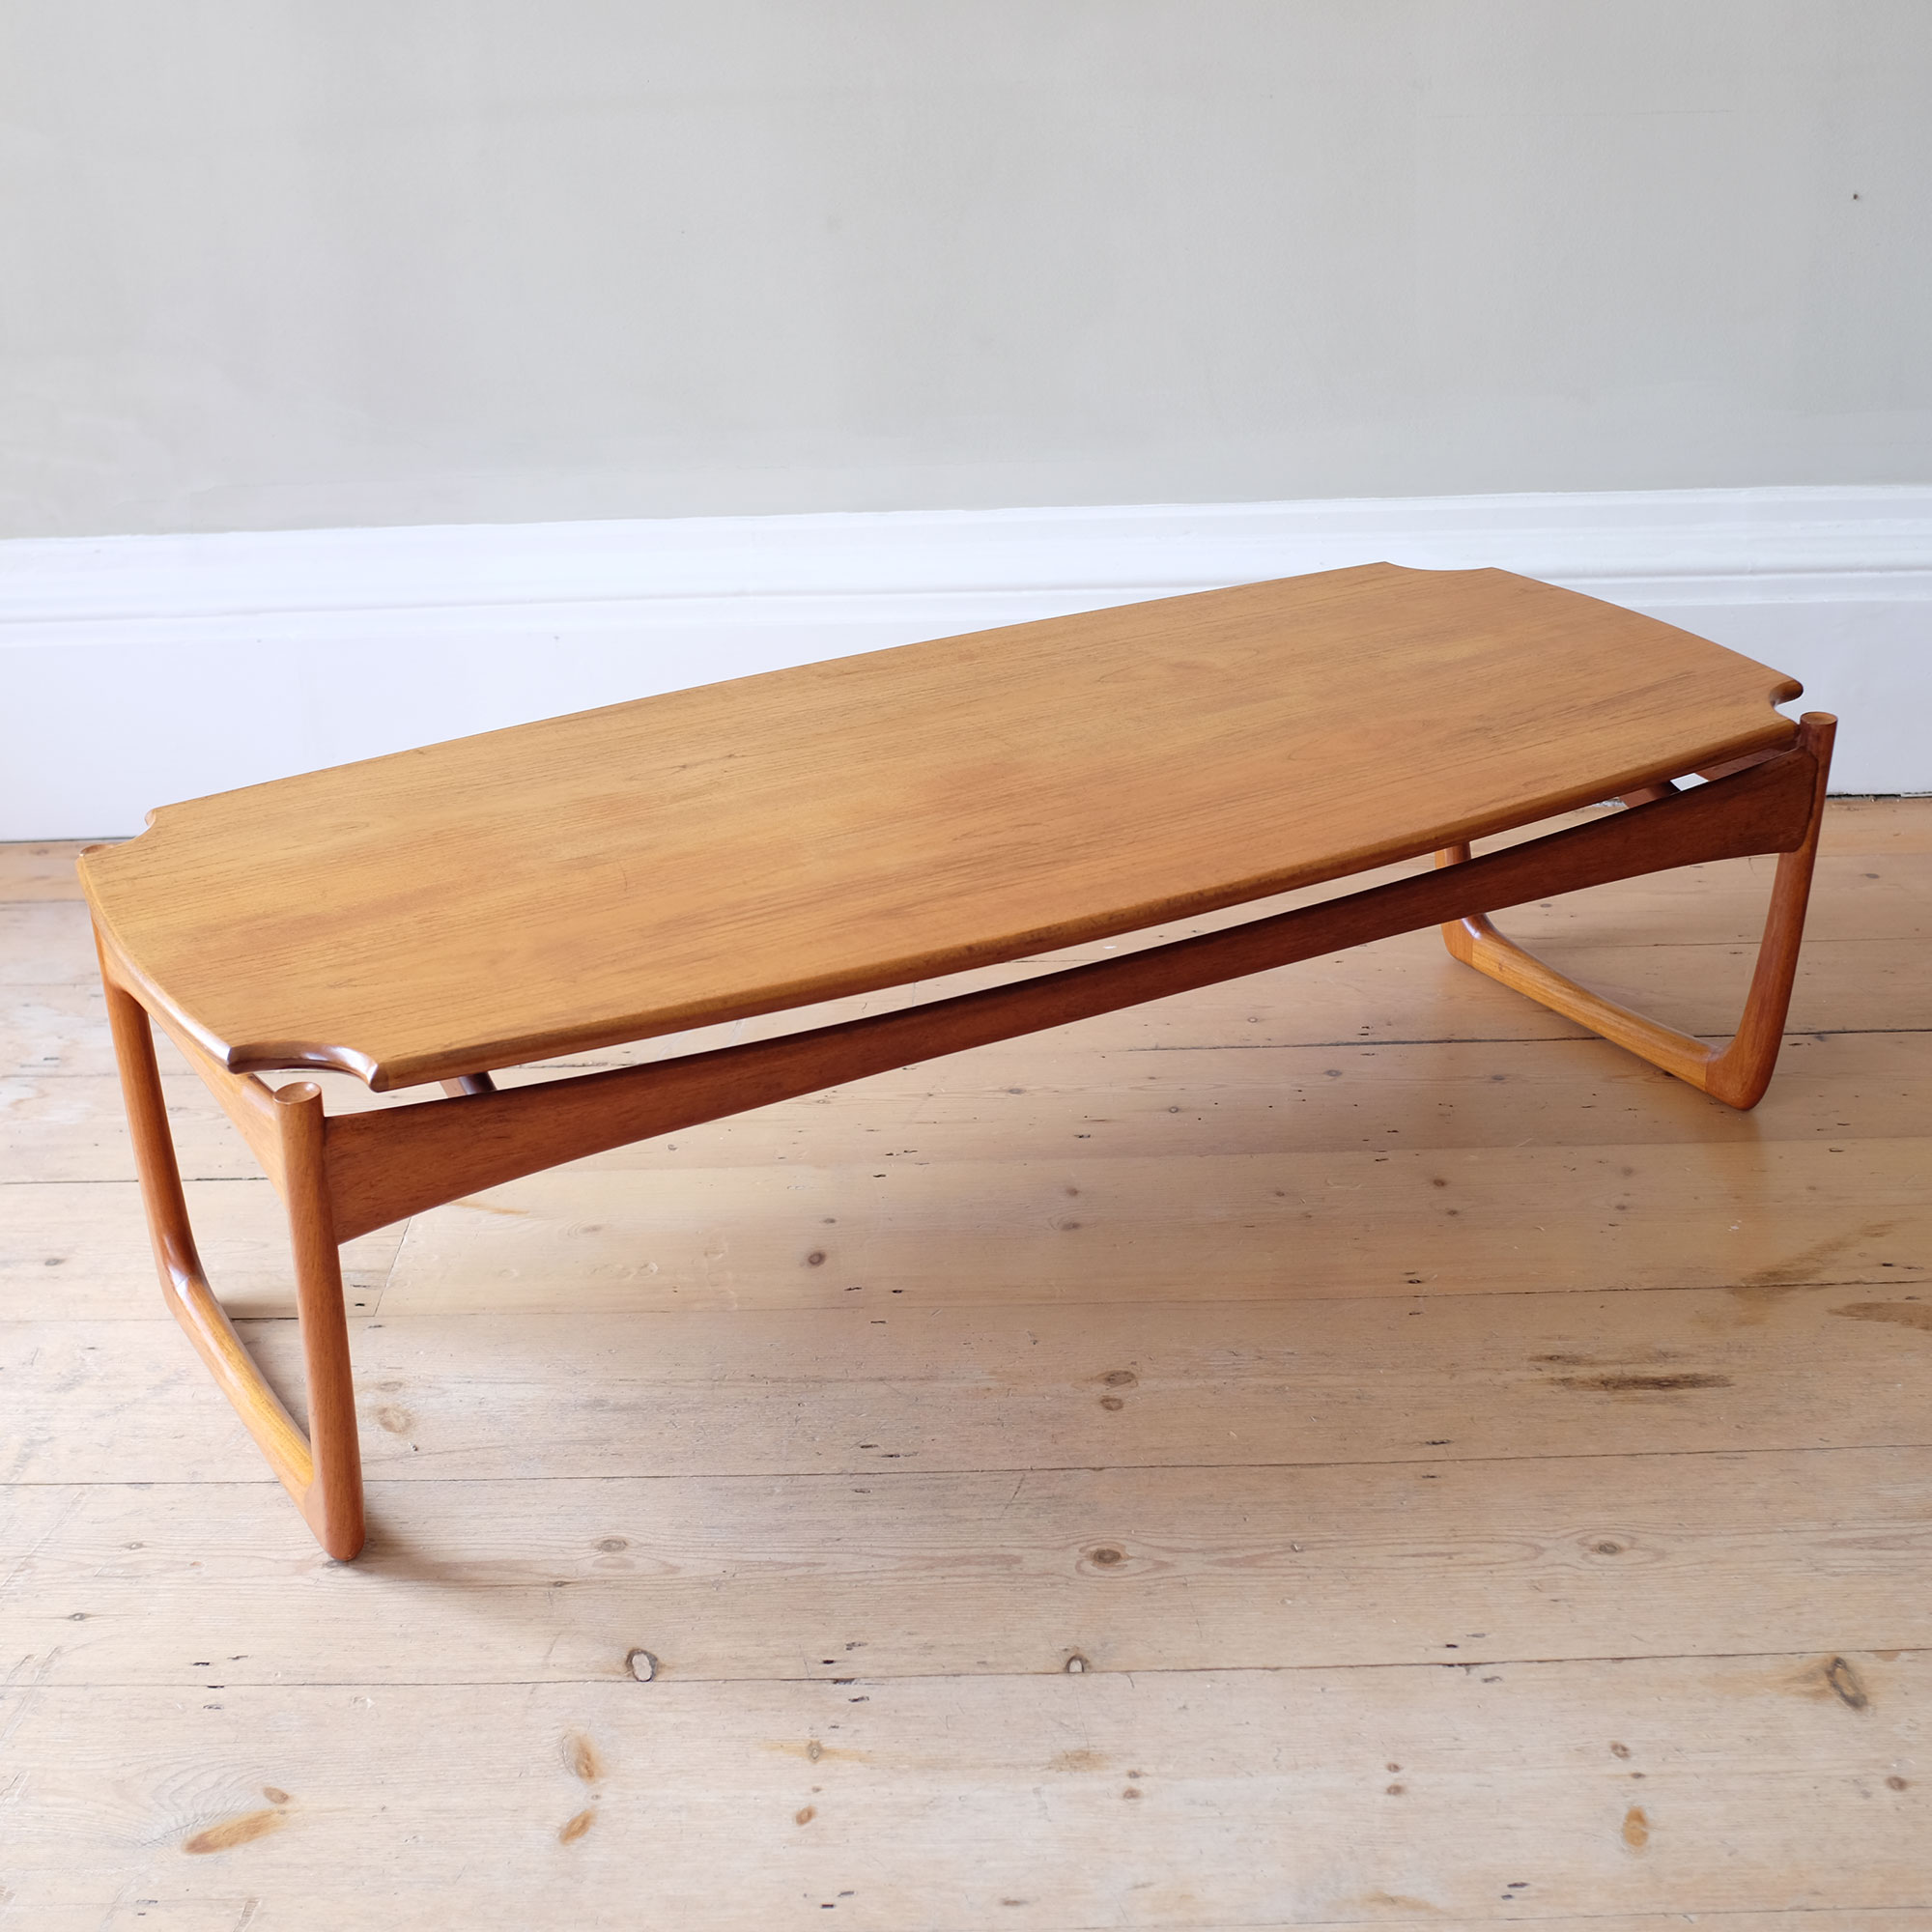 Large-Vintage-Wooden-Coffee-Table-vi